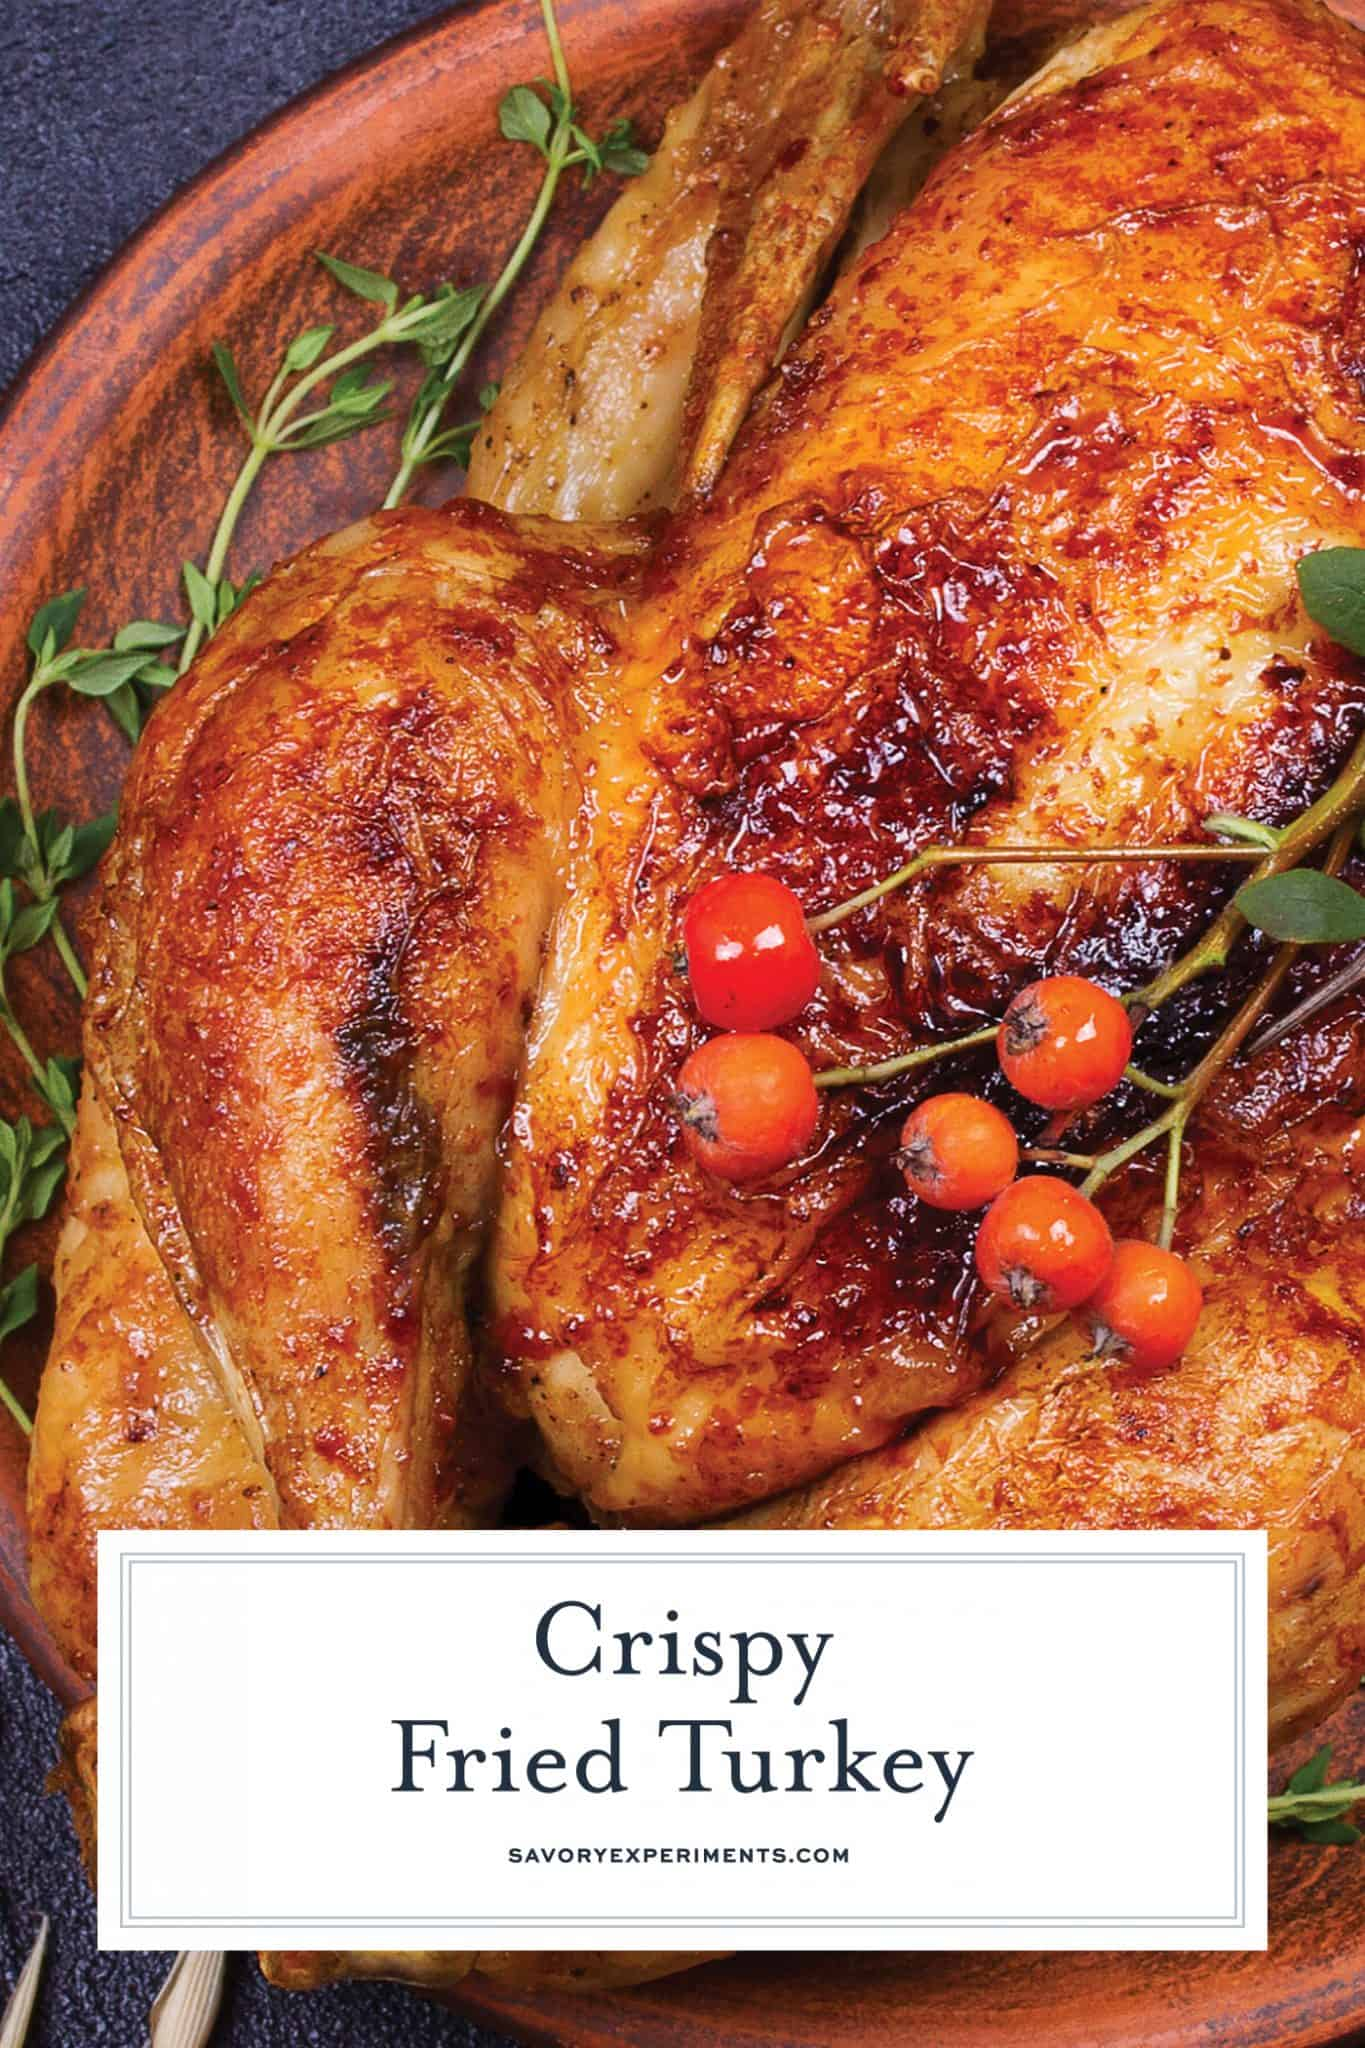 Have you ever wondered how to fry a turkey? Here are easy step-by-step instructions that can be used with any fried turkey recipe.#howtofryaturkey #friedturkeyrecipe www.savoryexperiments.com